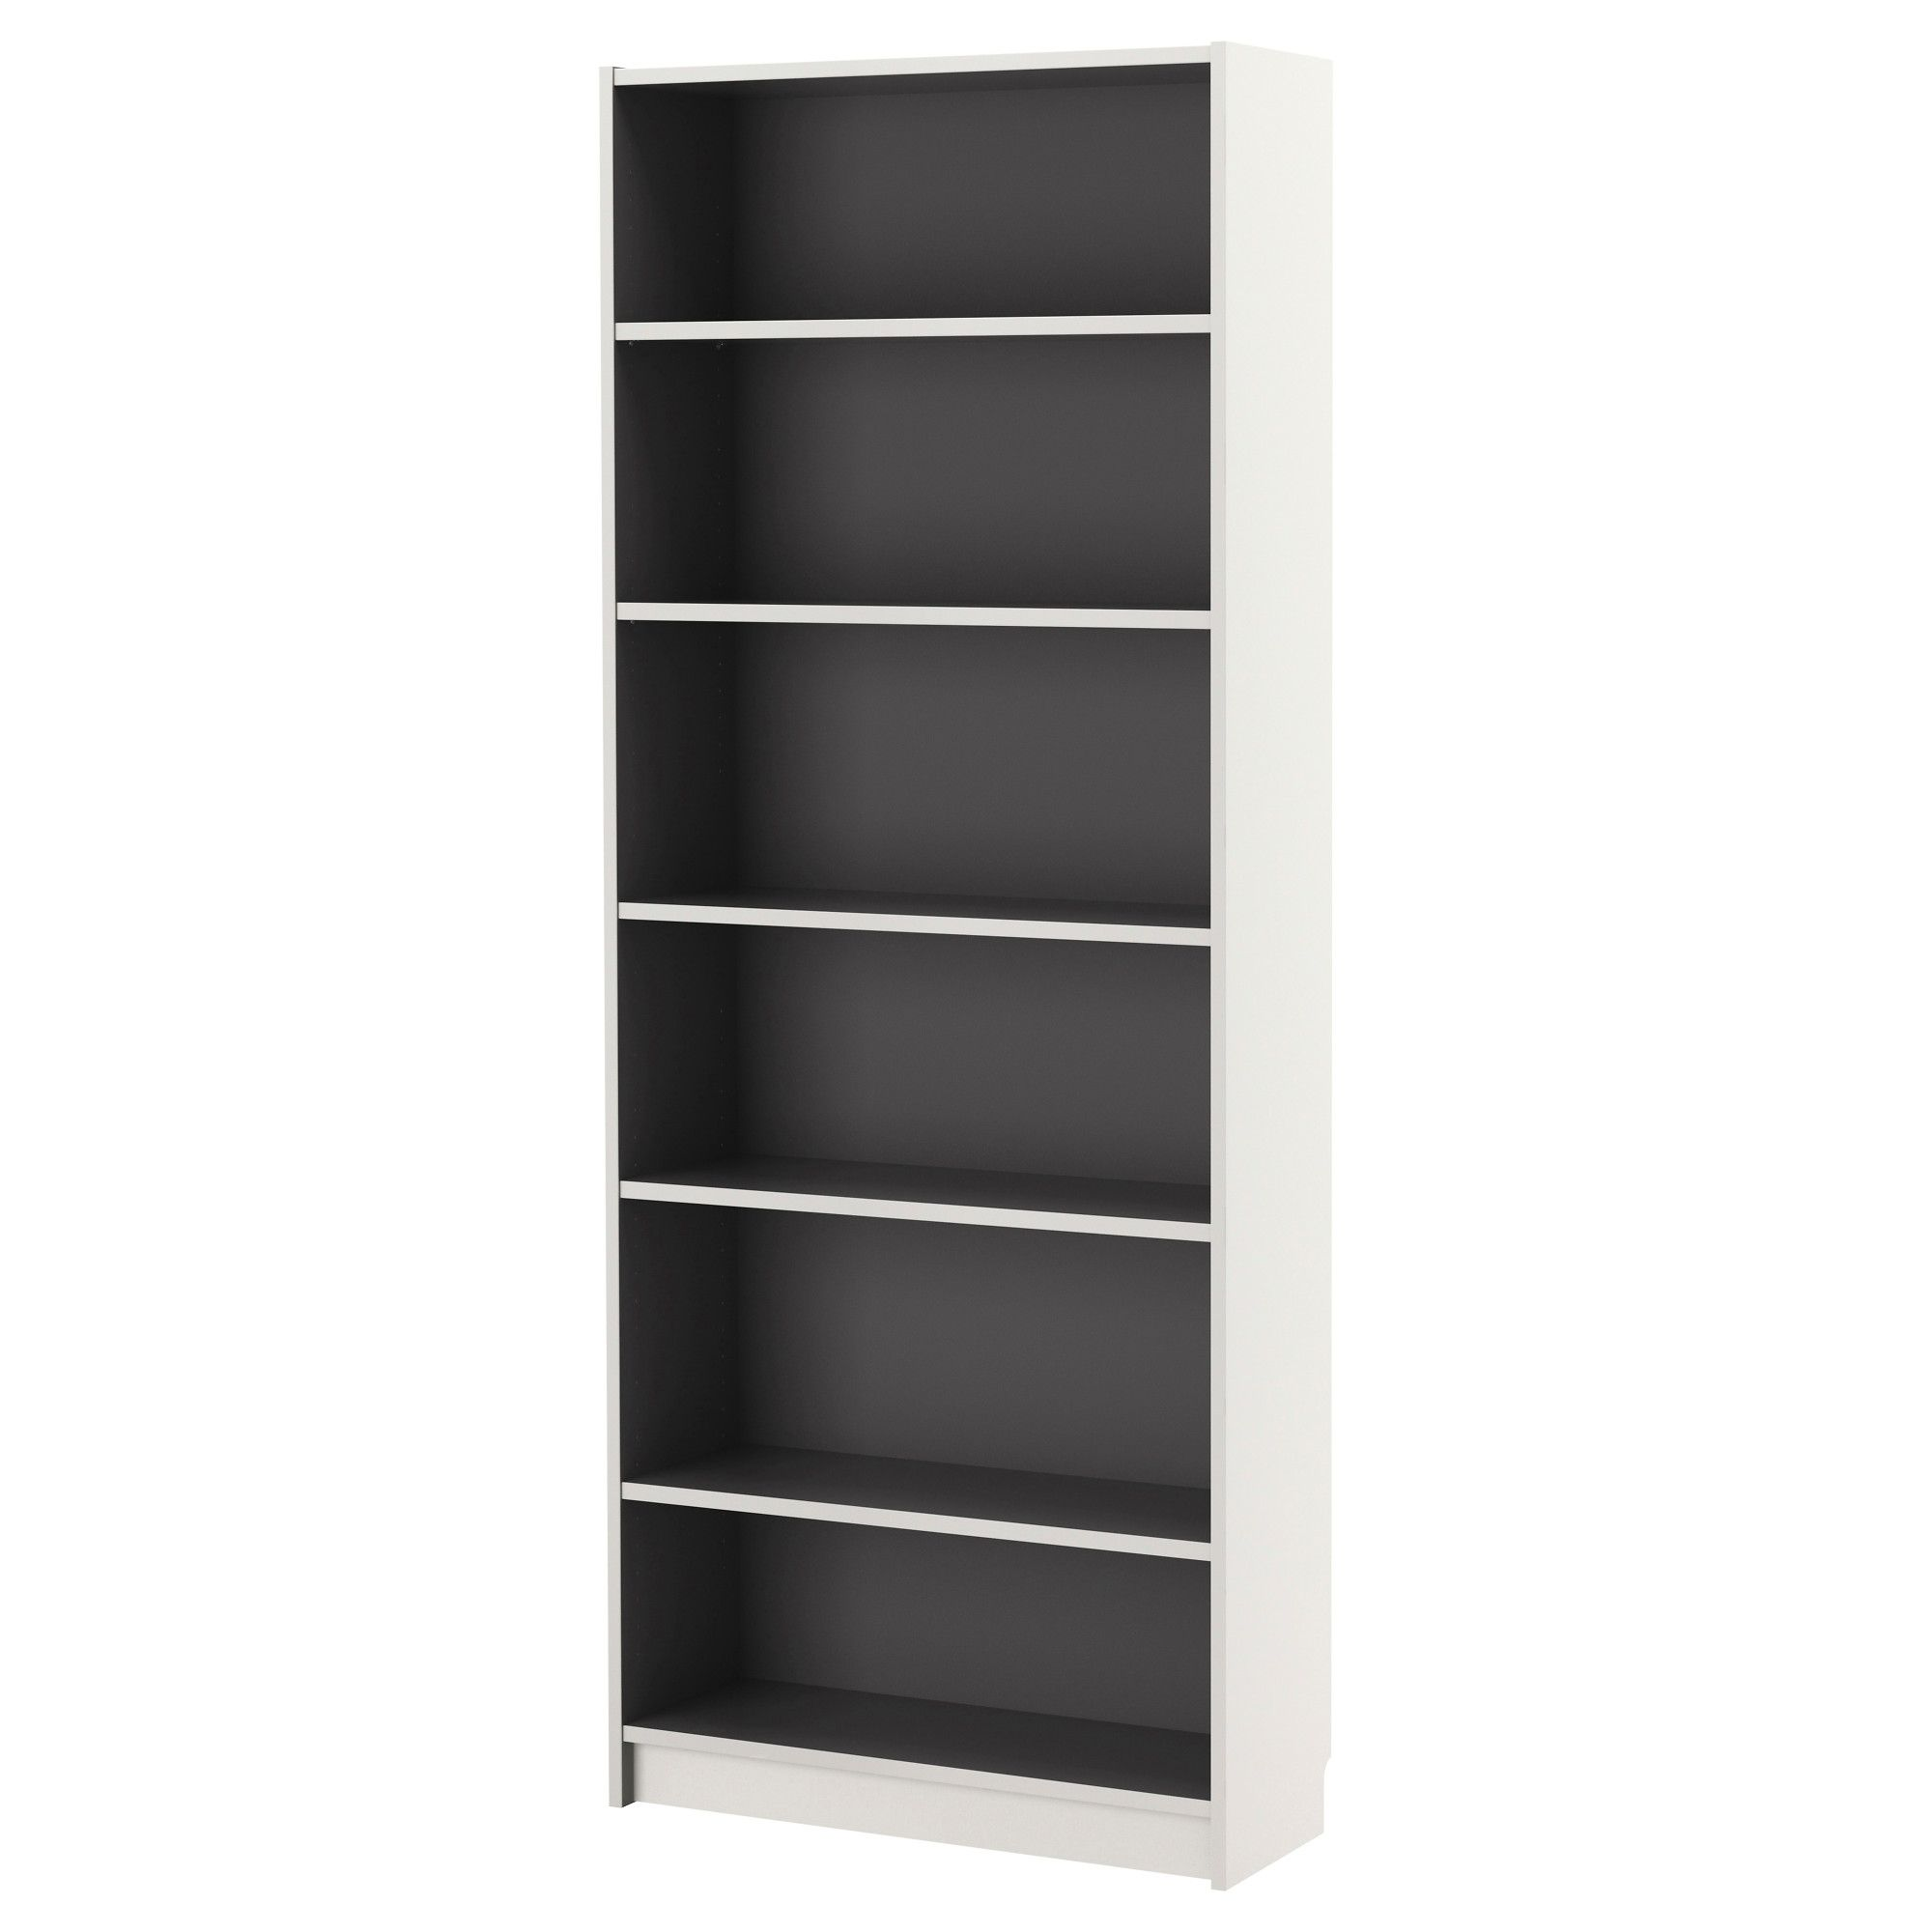 Ikea regal billy  $59.99 BILLY Bookcase - IKEA Dimensions: 31 1/2x11x79 1/2